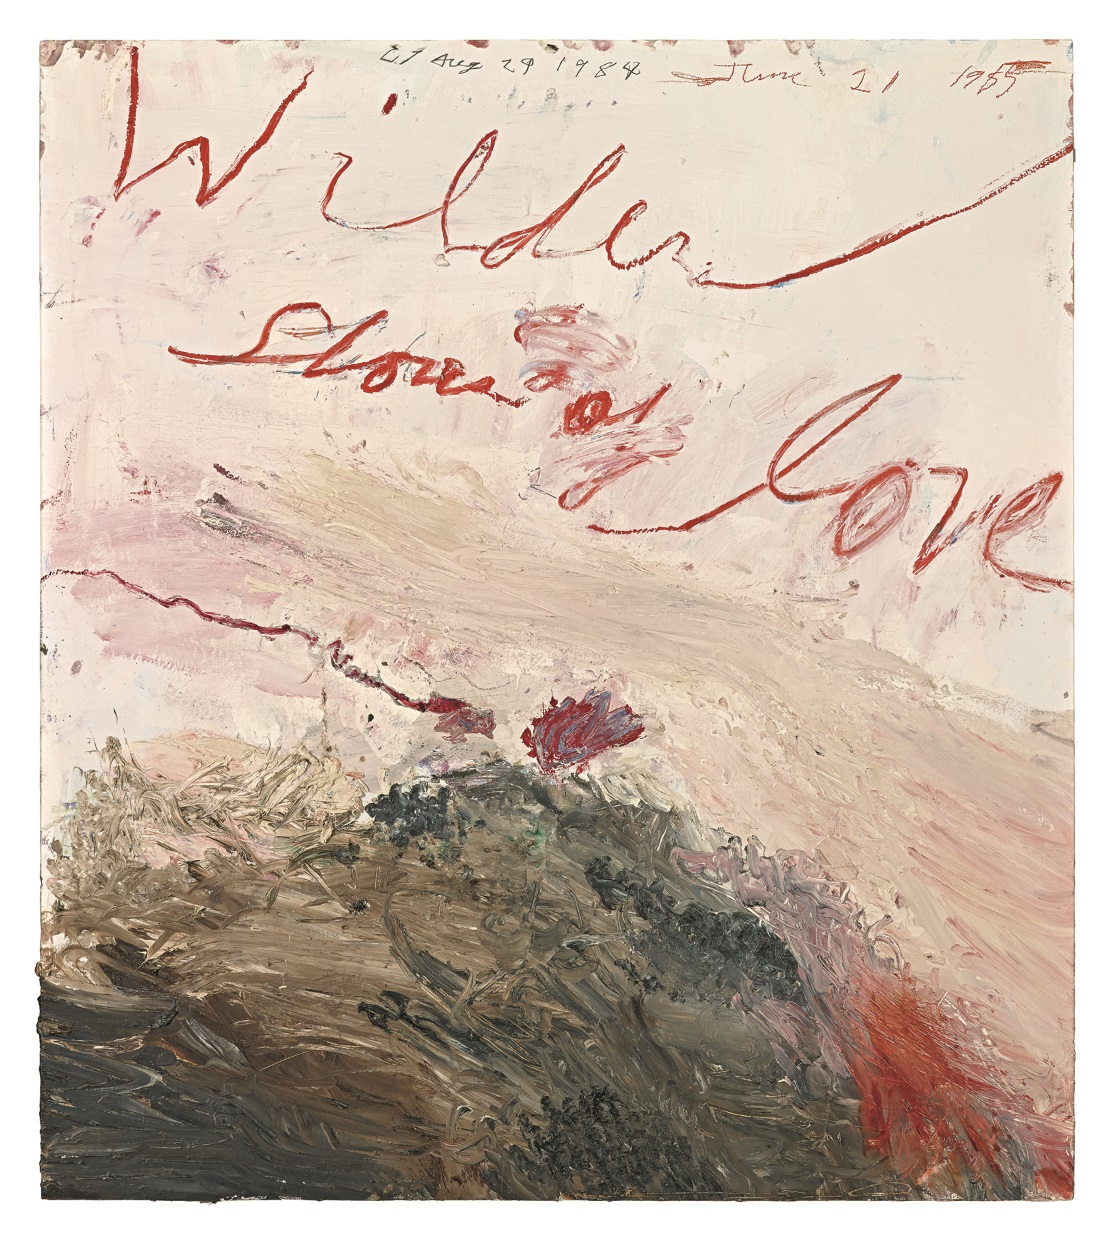 Twombly, les mythes et la chair